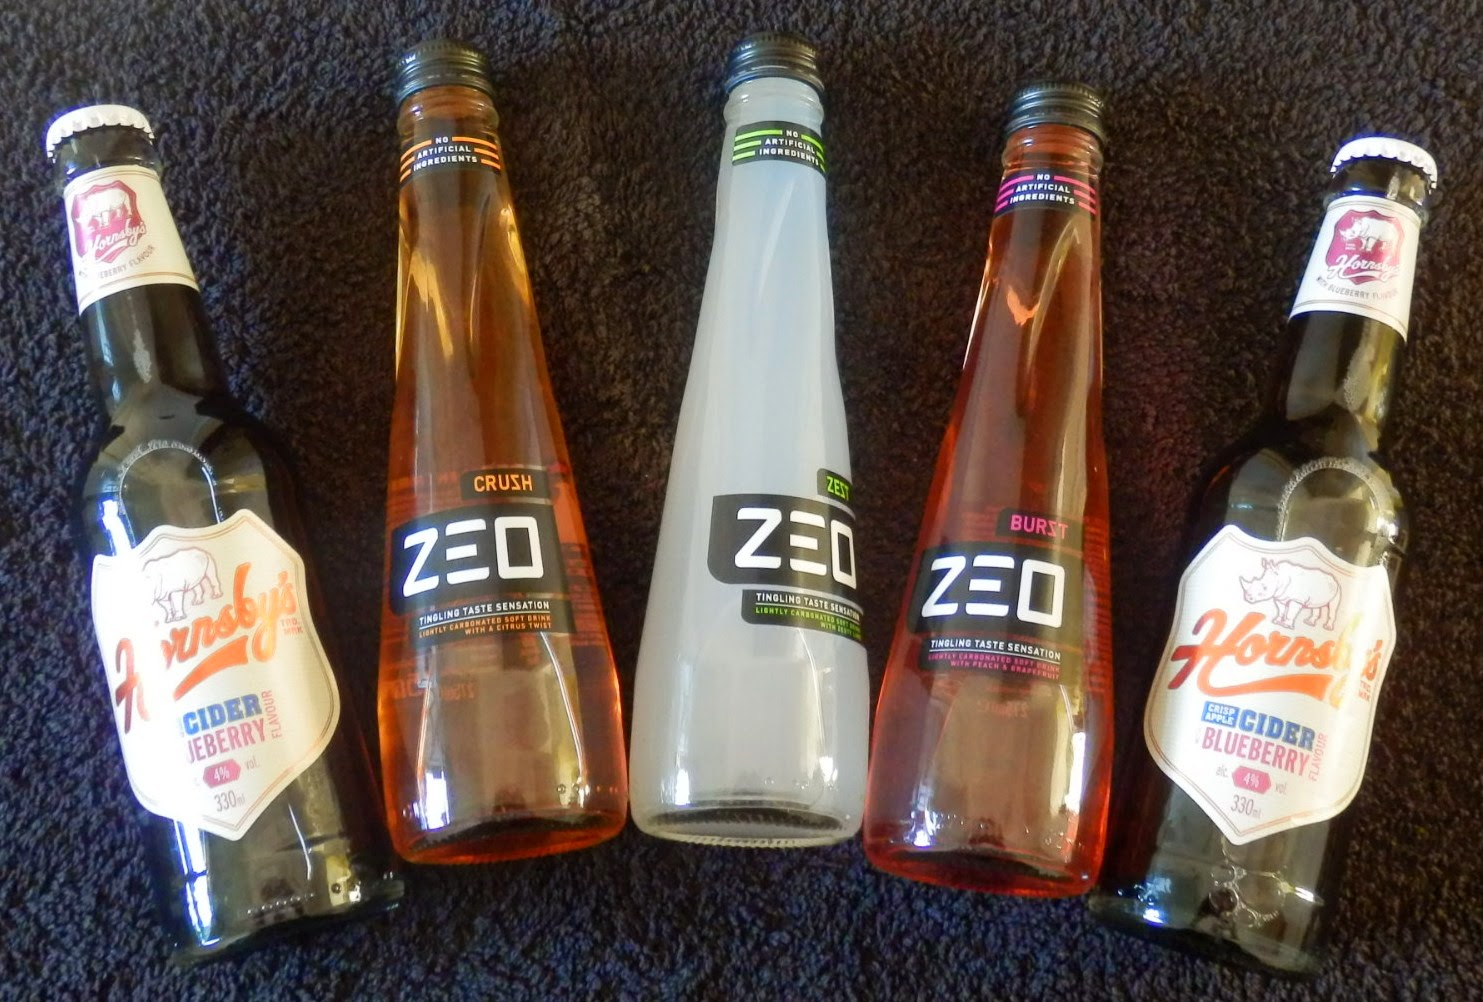 3 Zeo Drinks - Zest Lime, Peach & Grapefruit Burst and  Citrus Crush & Hornsby's Blueberry Cider